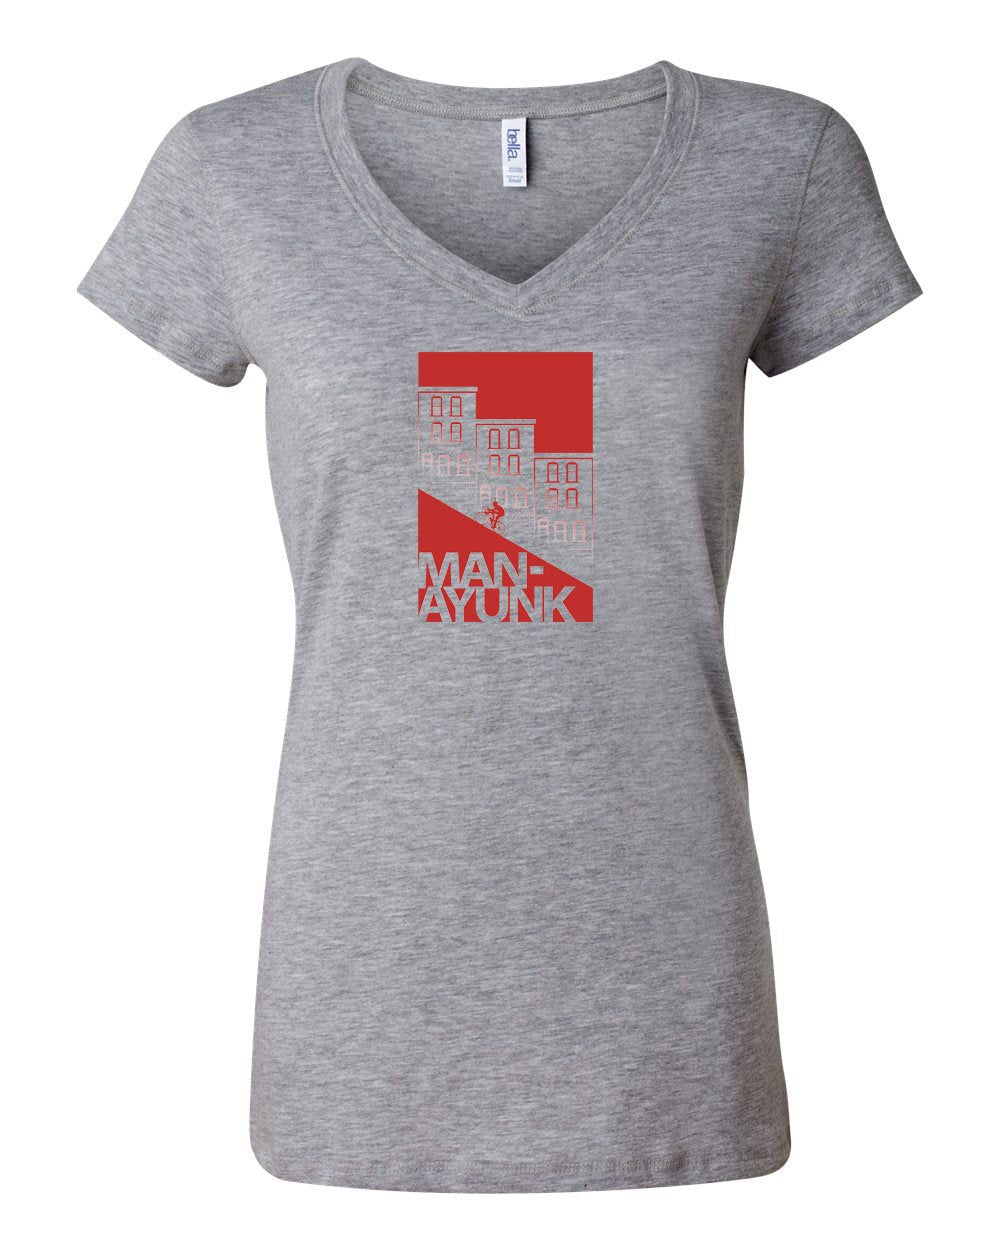 Manayunk LADIES Junior Fit V-Neck